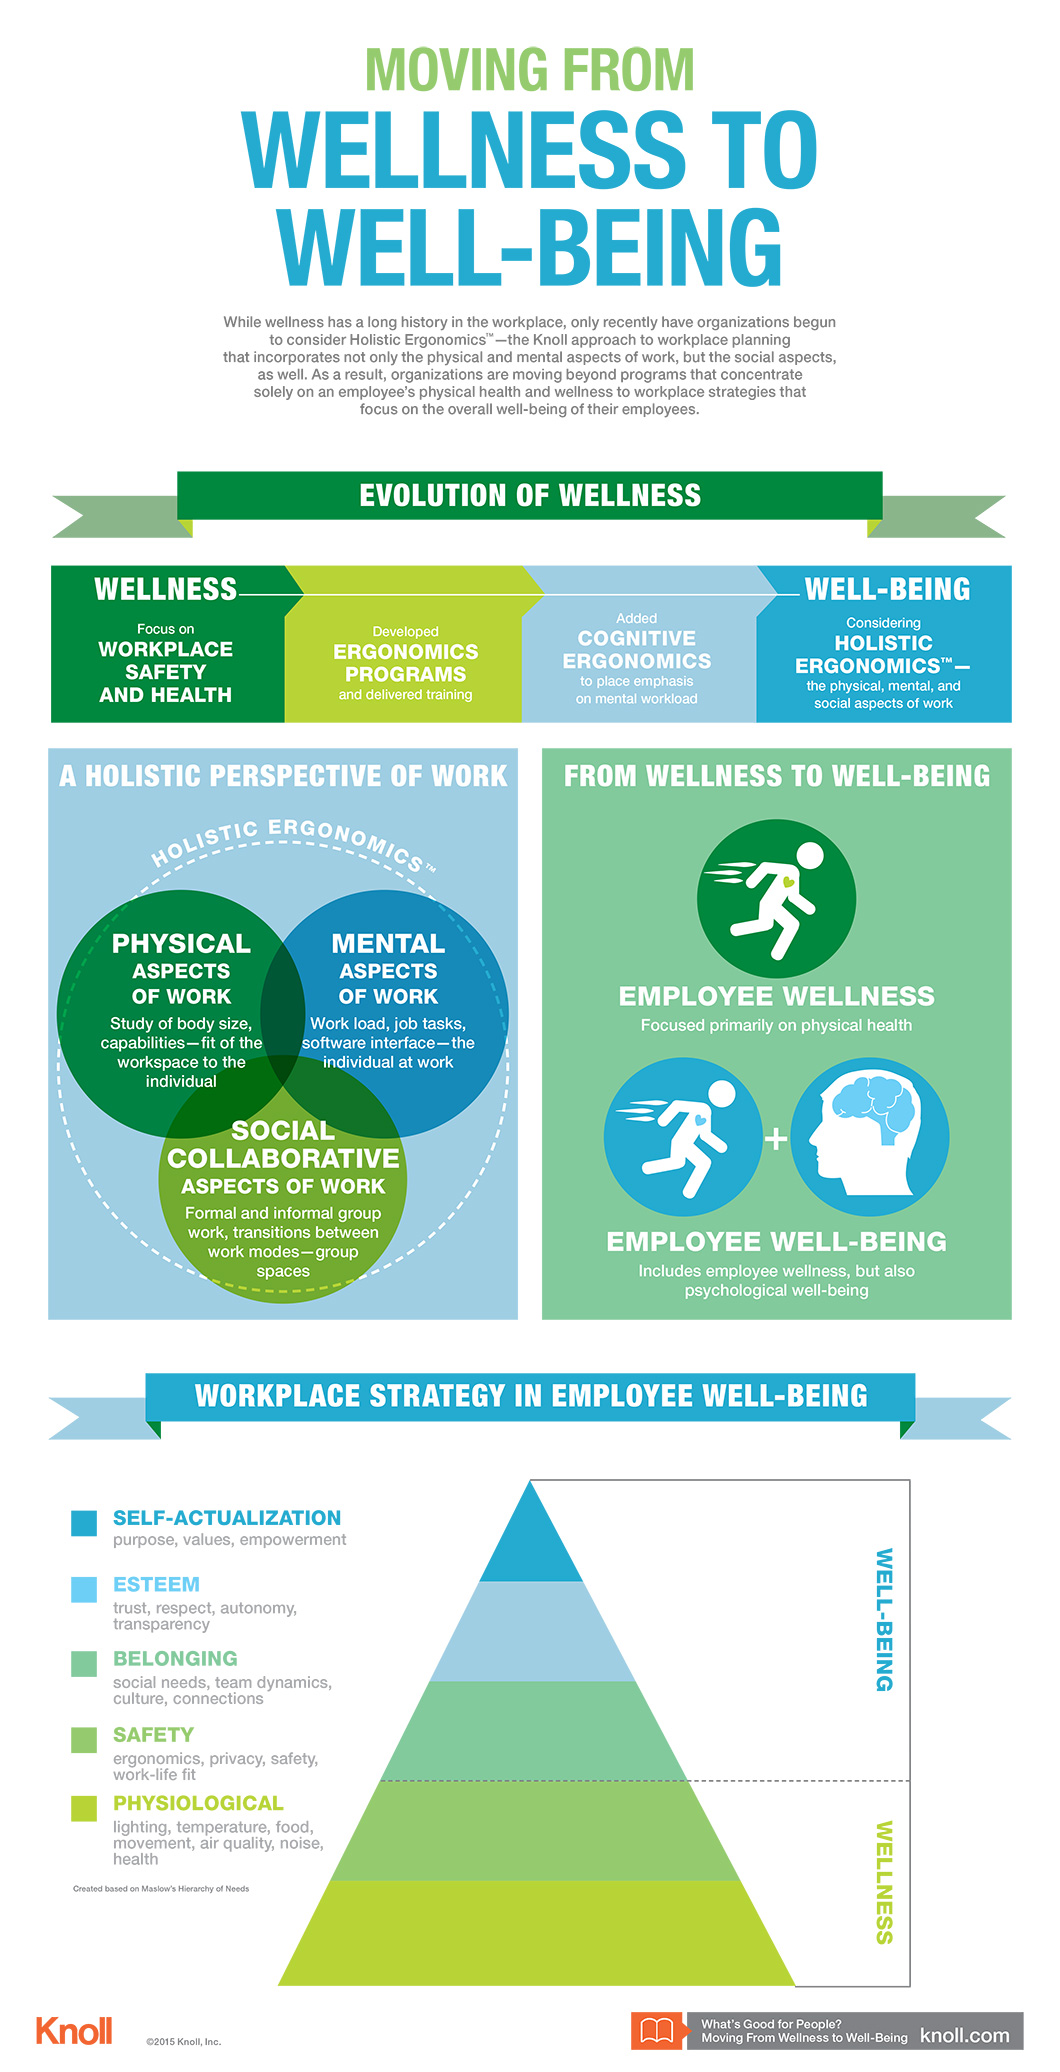 moving from wellness to well being infographic workplace a visual summary of the knoll research paper what s good for people moving from wellness to well being